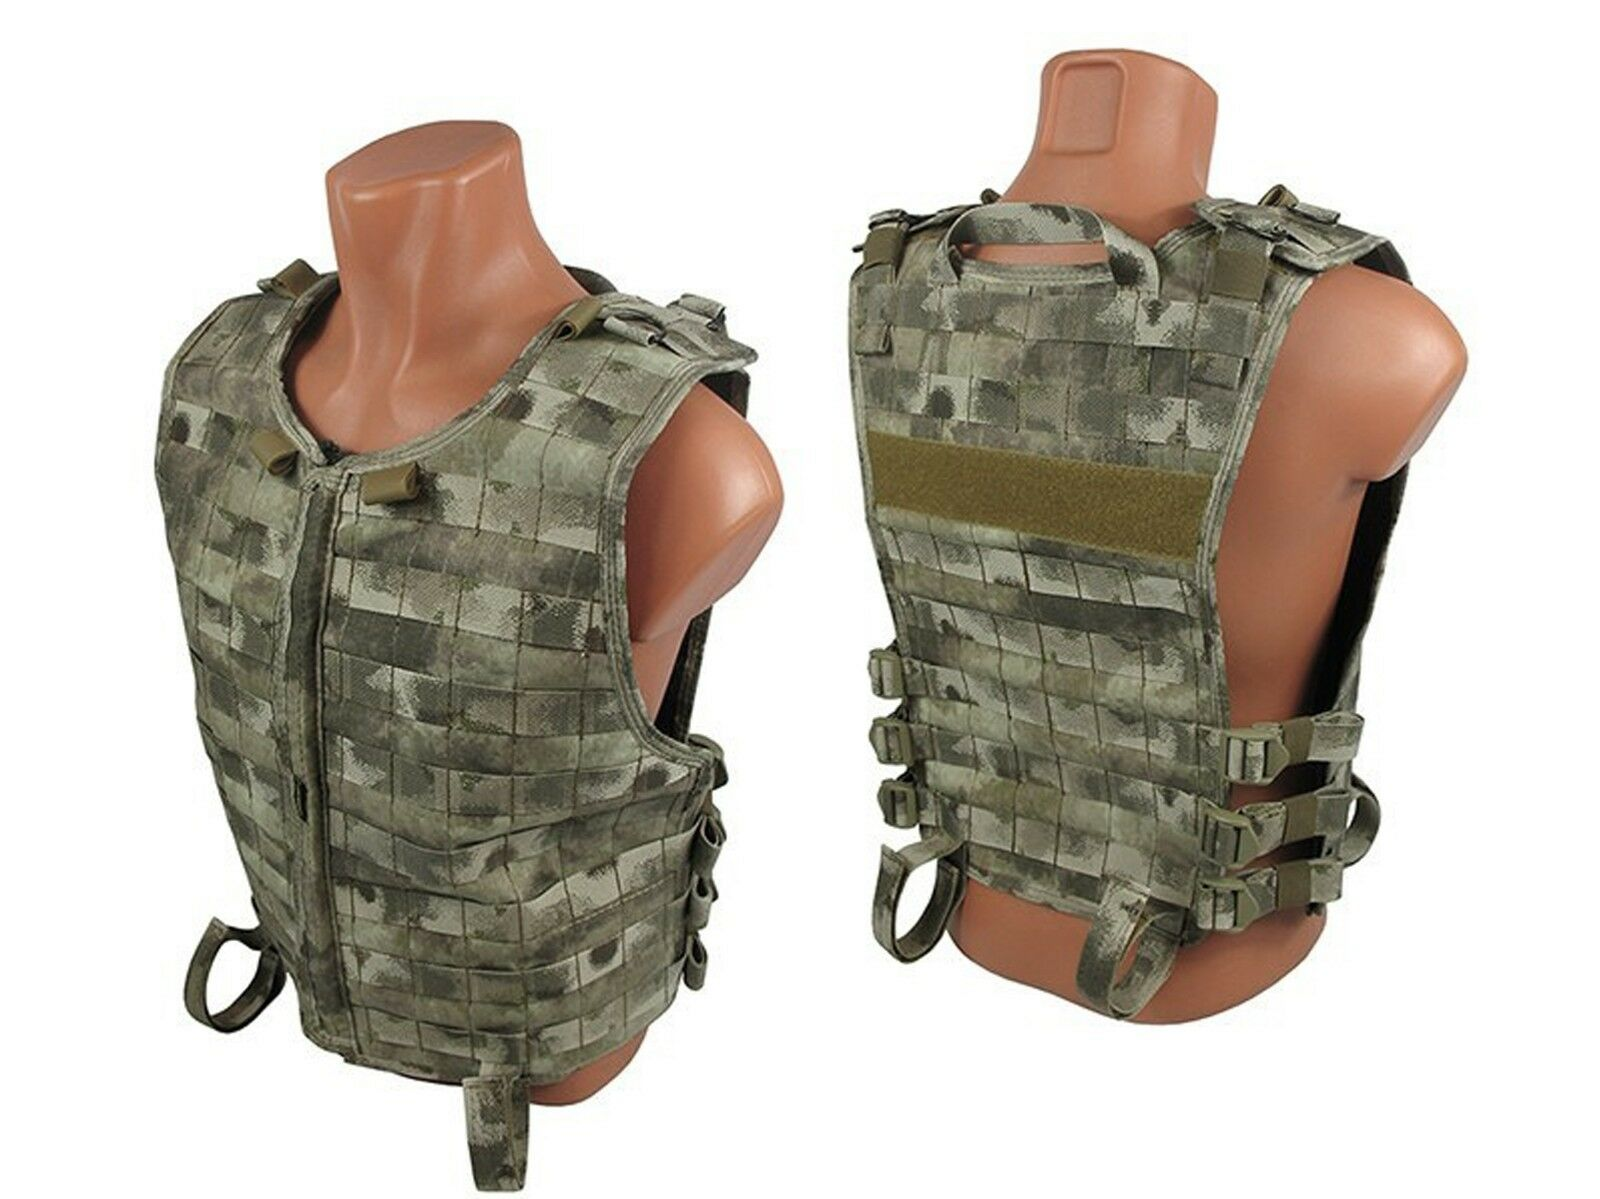 Tactical Vest Armee Paintball Airsoft Brust Rig Molly Kumpels Atacs au